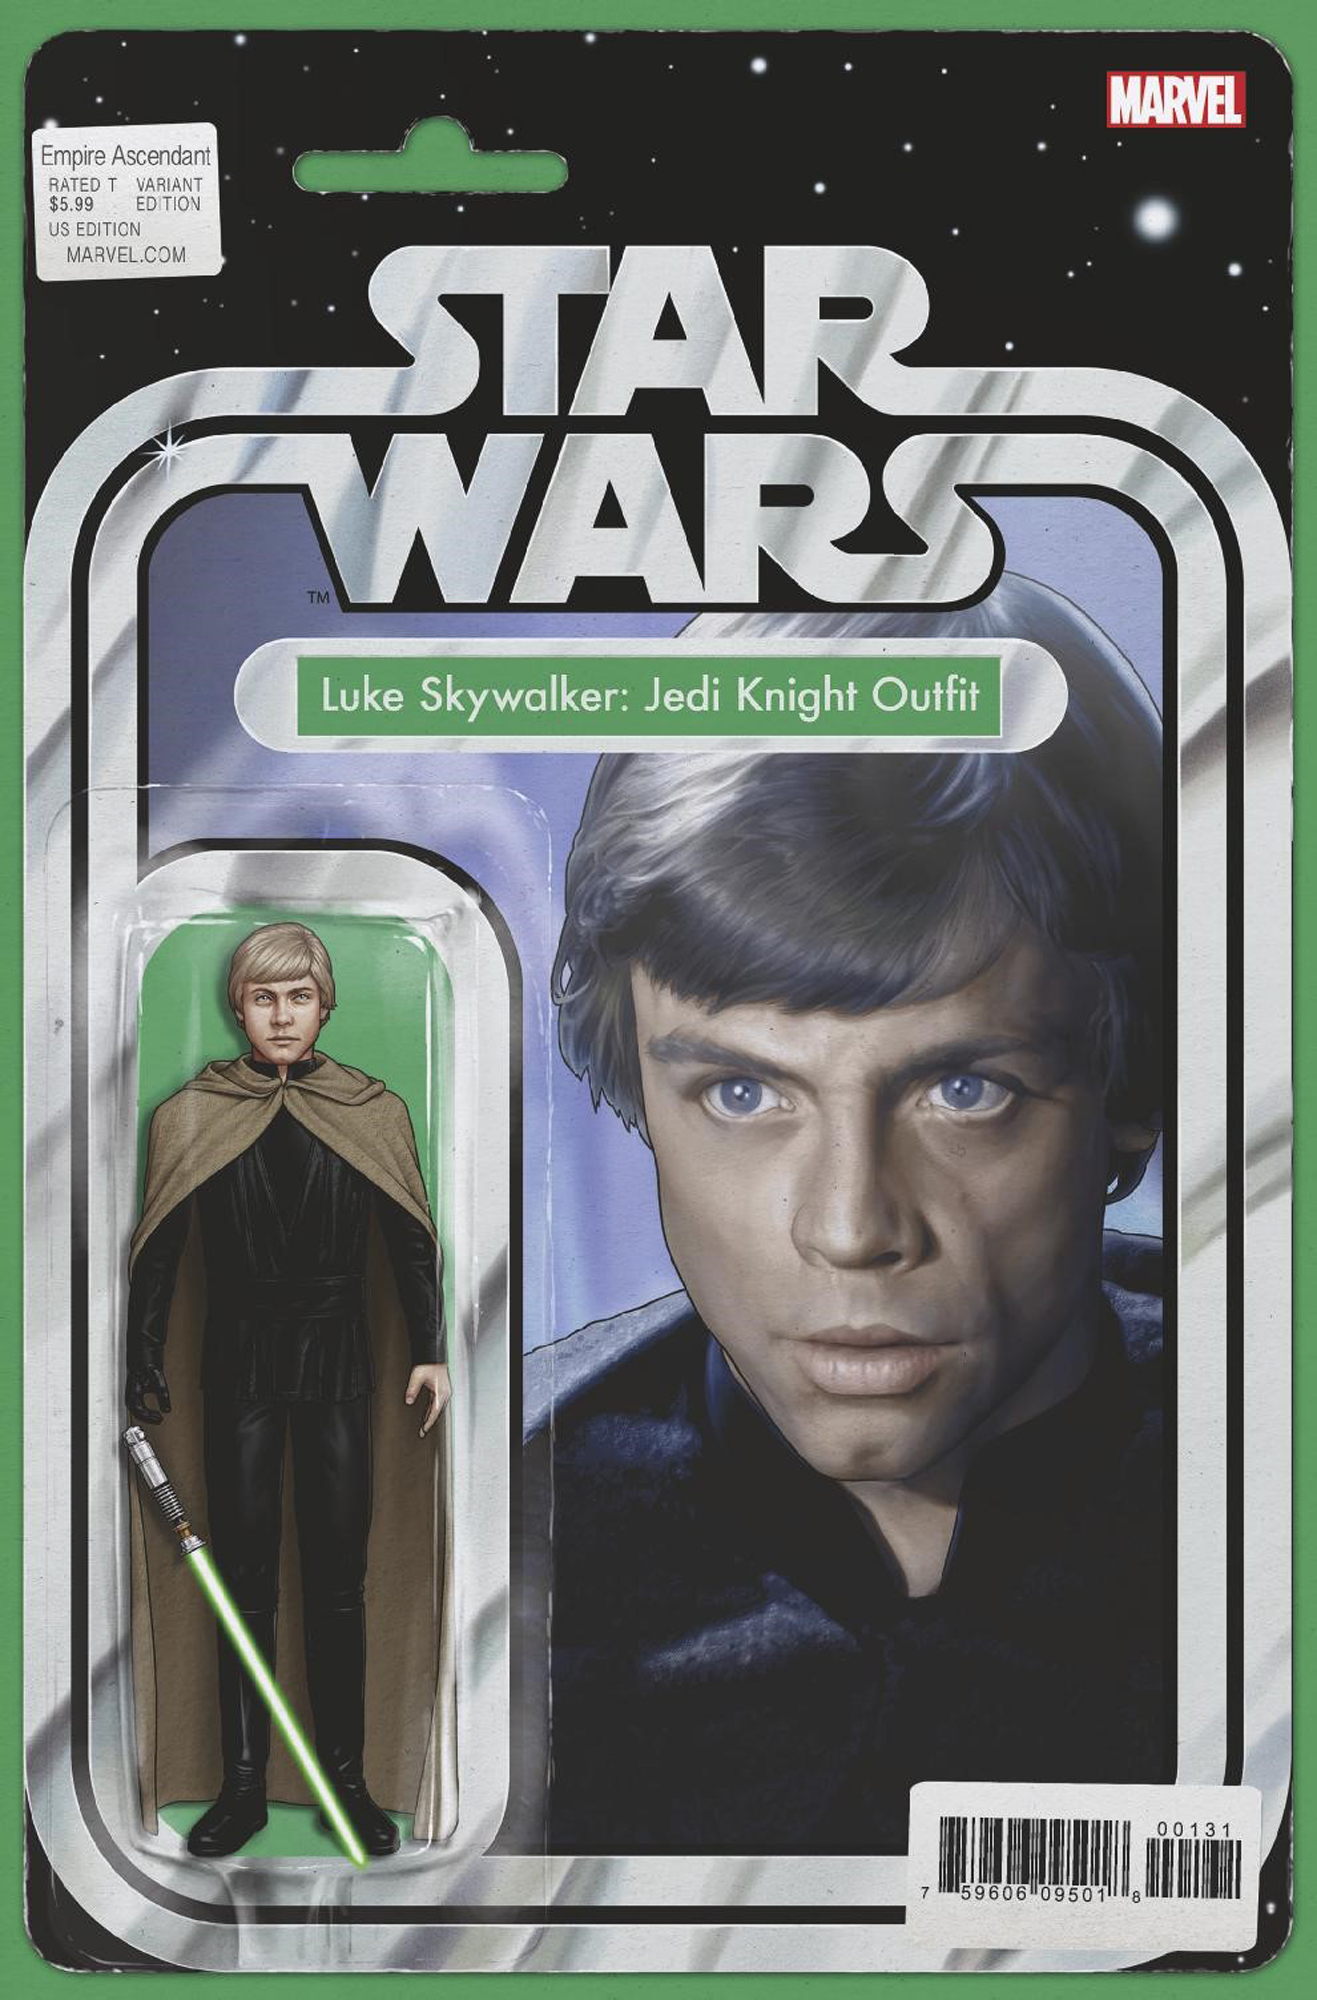 STAR WARS EMPIRE ASCENDANT #1 CHRISTOPHER ACTION FIGURE VAR